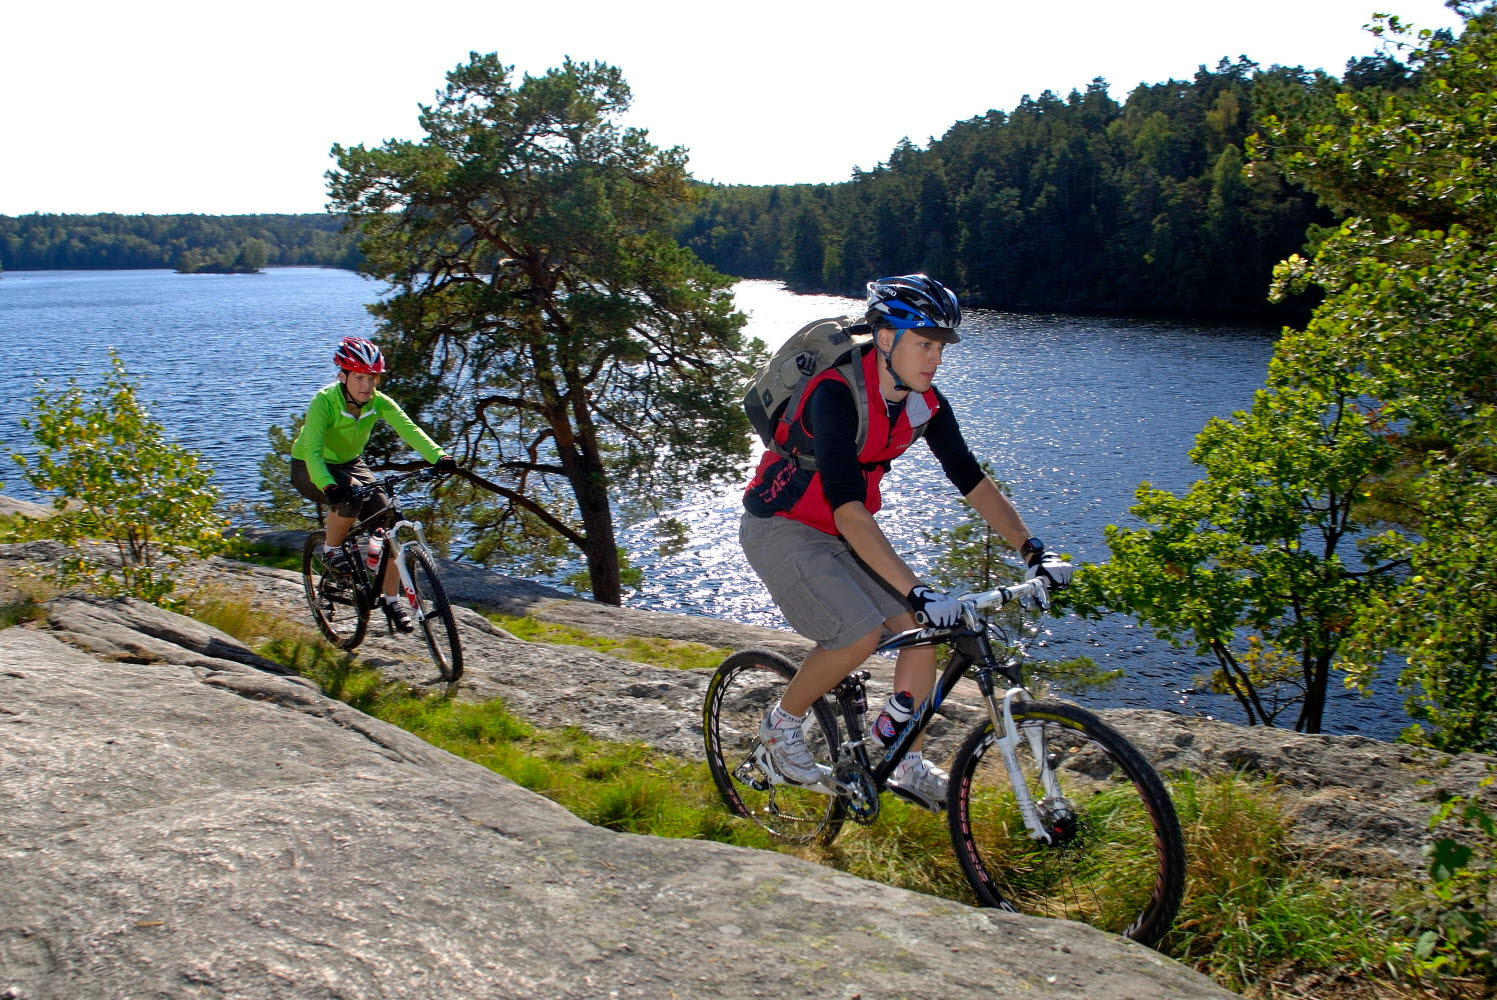 Couple mountain biking on the cliffs by a lake - Photo Göran Assner.jpg